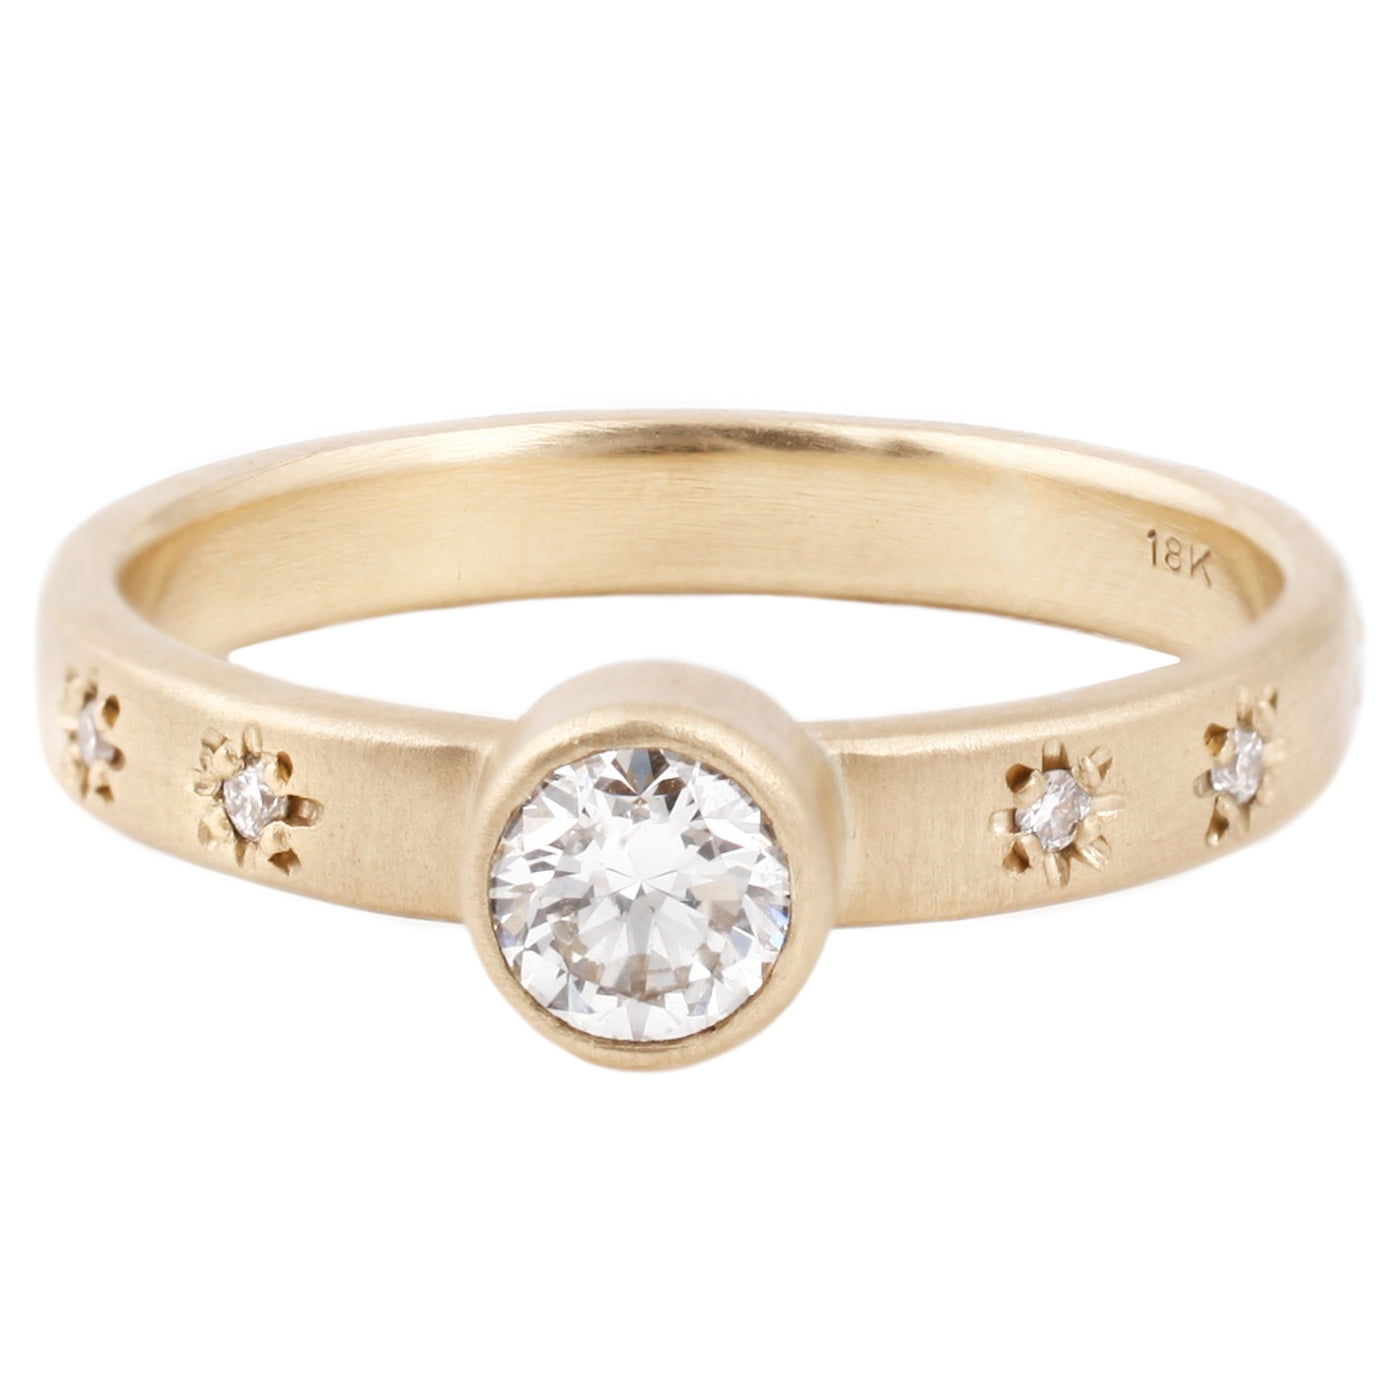 Sarah Swell Starry Sky Diamond Solitaire set in gold